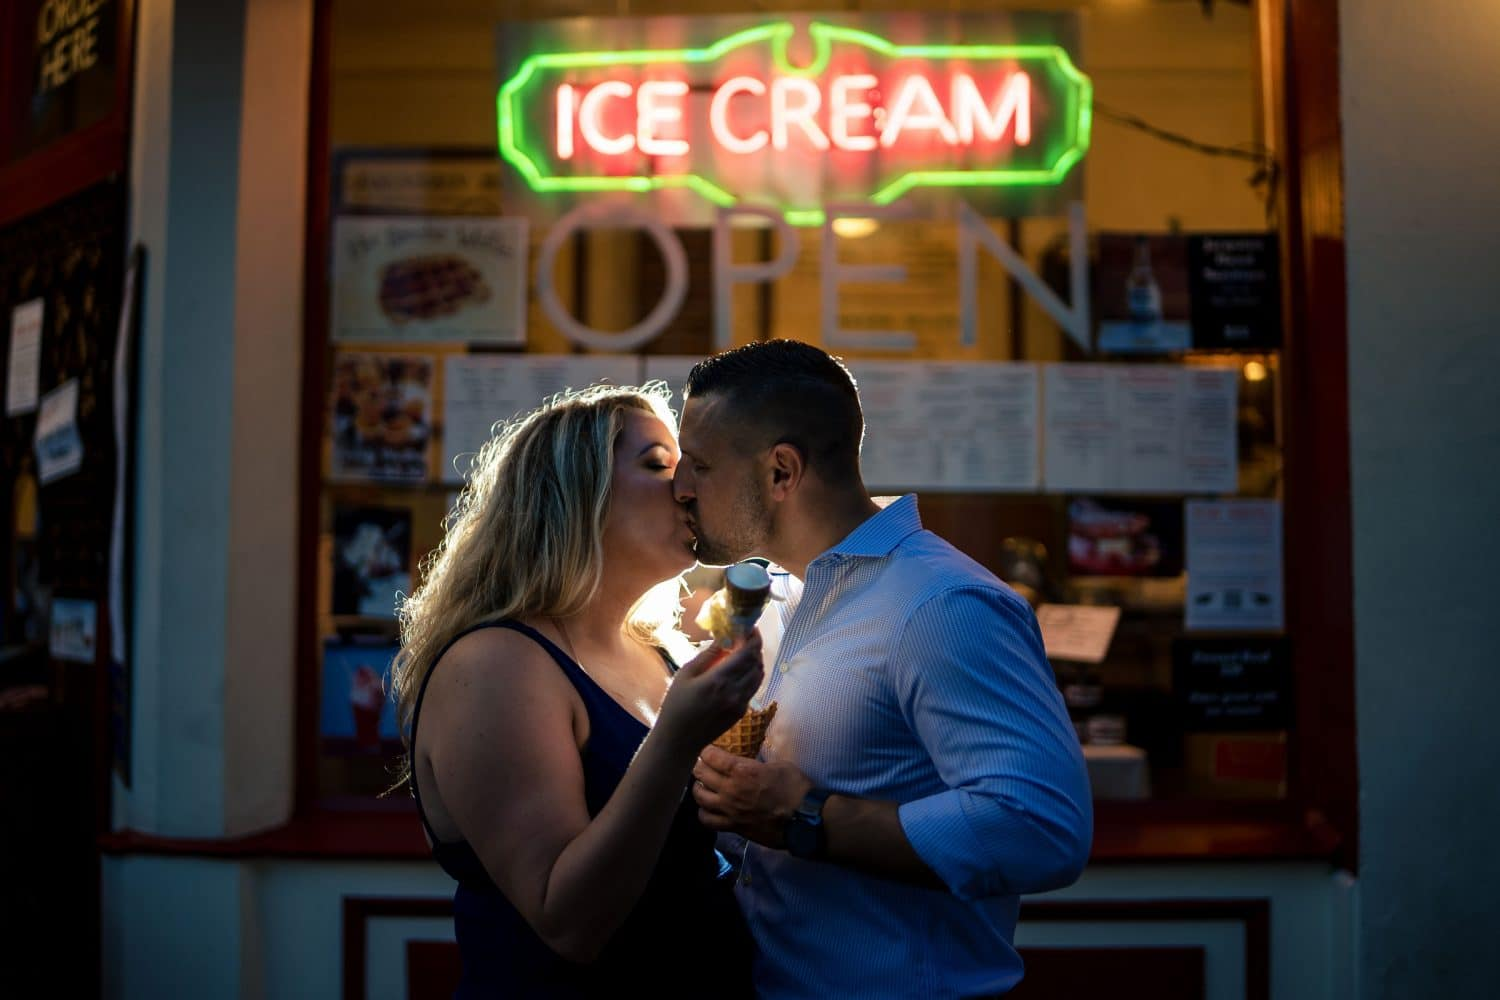 Couple standing over the famous Ice Cream sign in Philly